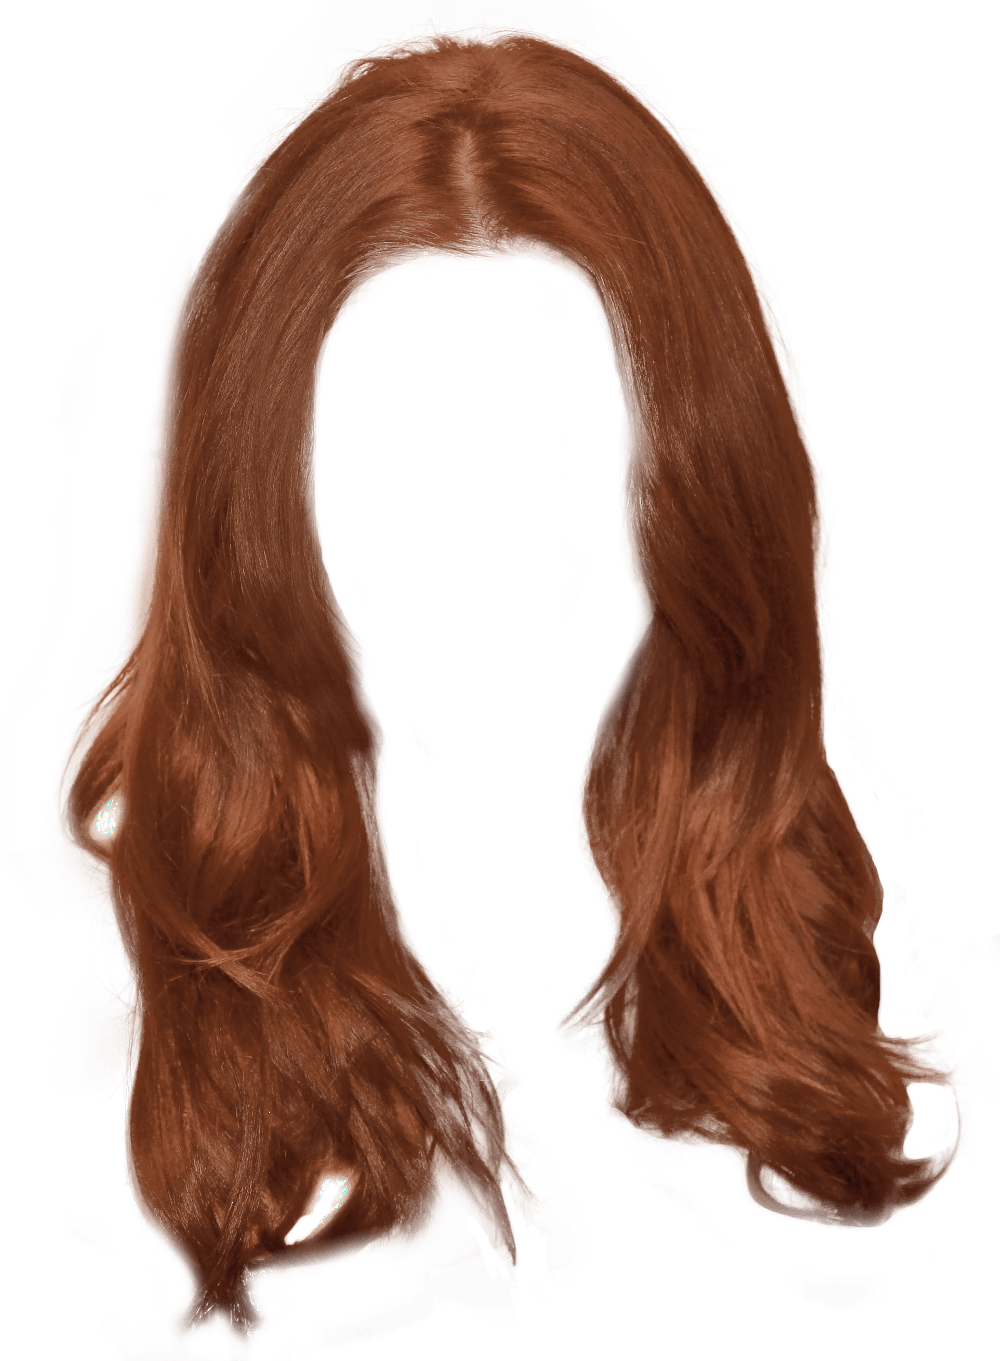 PNG File Name: Hair PlusPng.c